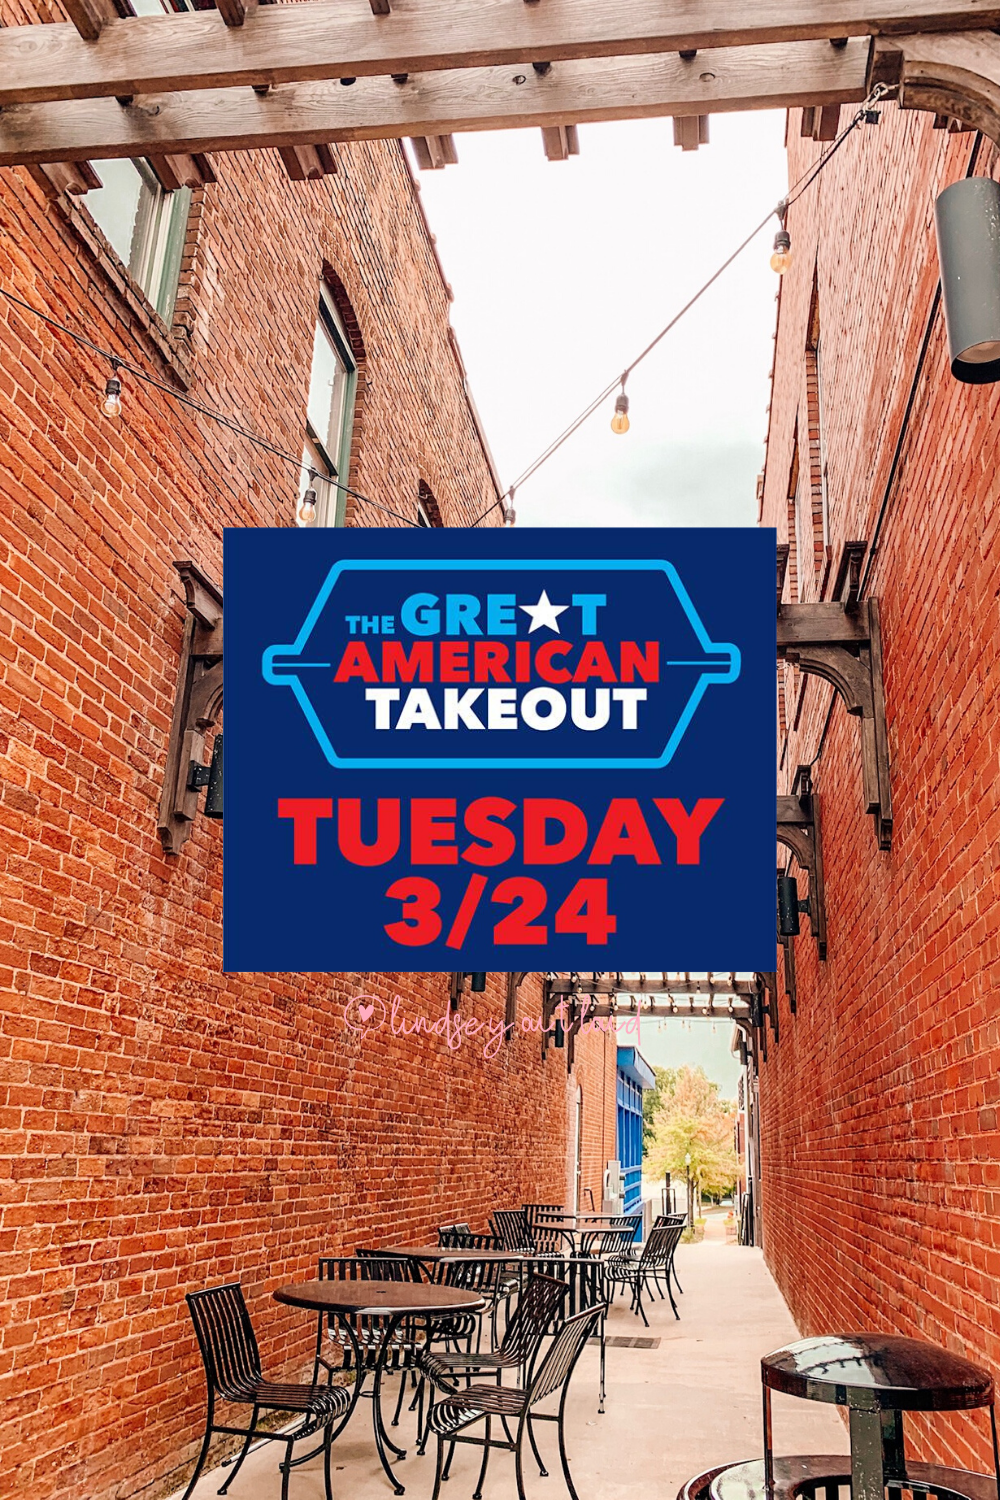 Takeout in Easley, SC – Let's Support Small Business